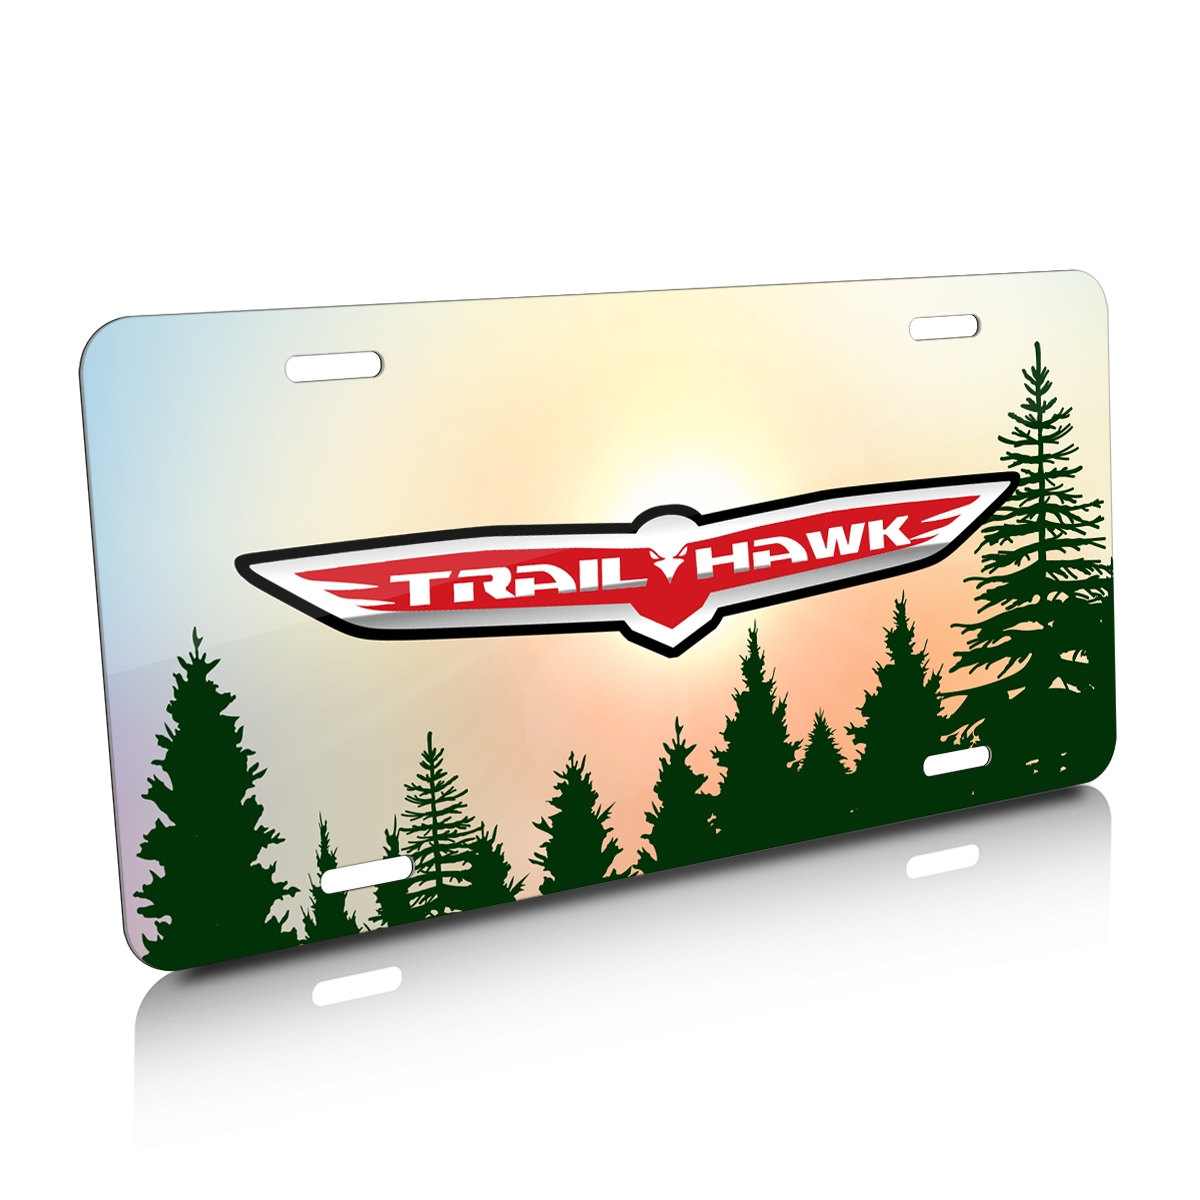 Jeep Trailhawk Green Forrest Sillhouette Graphic Aluminum License Plate